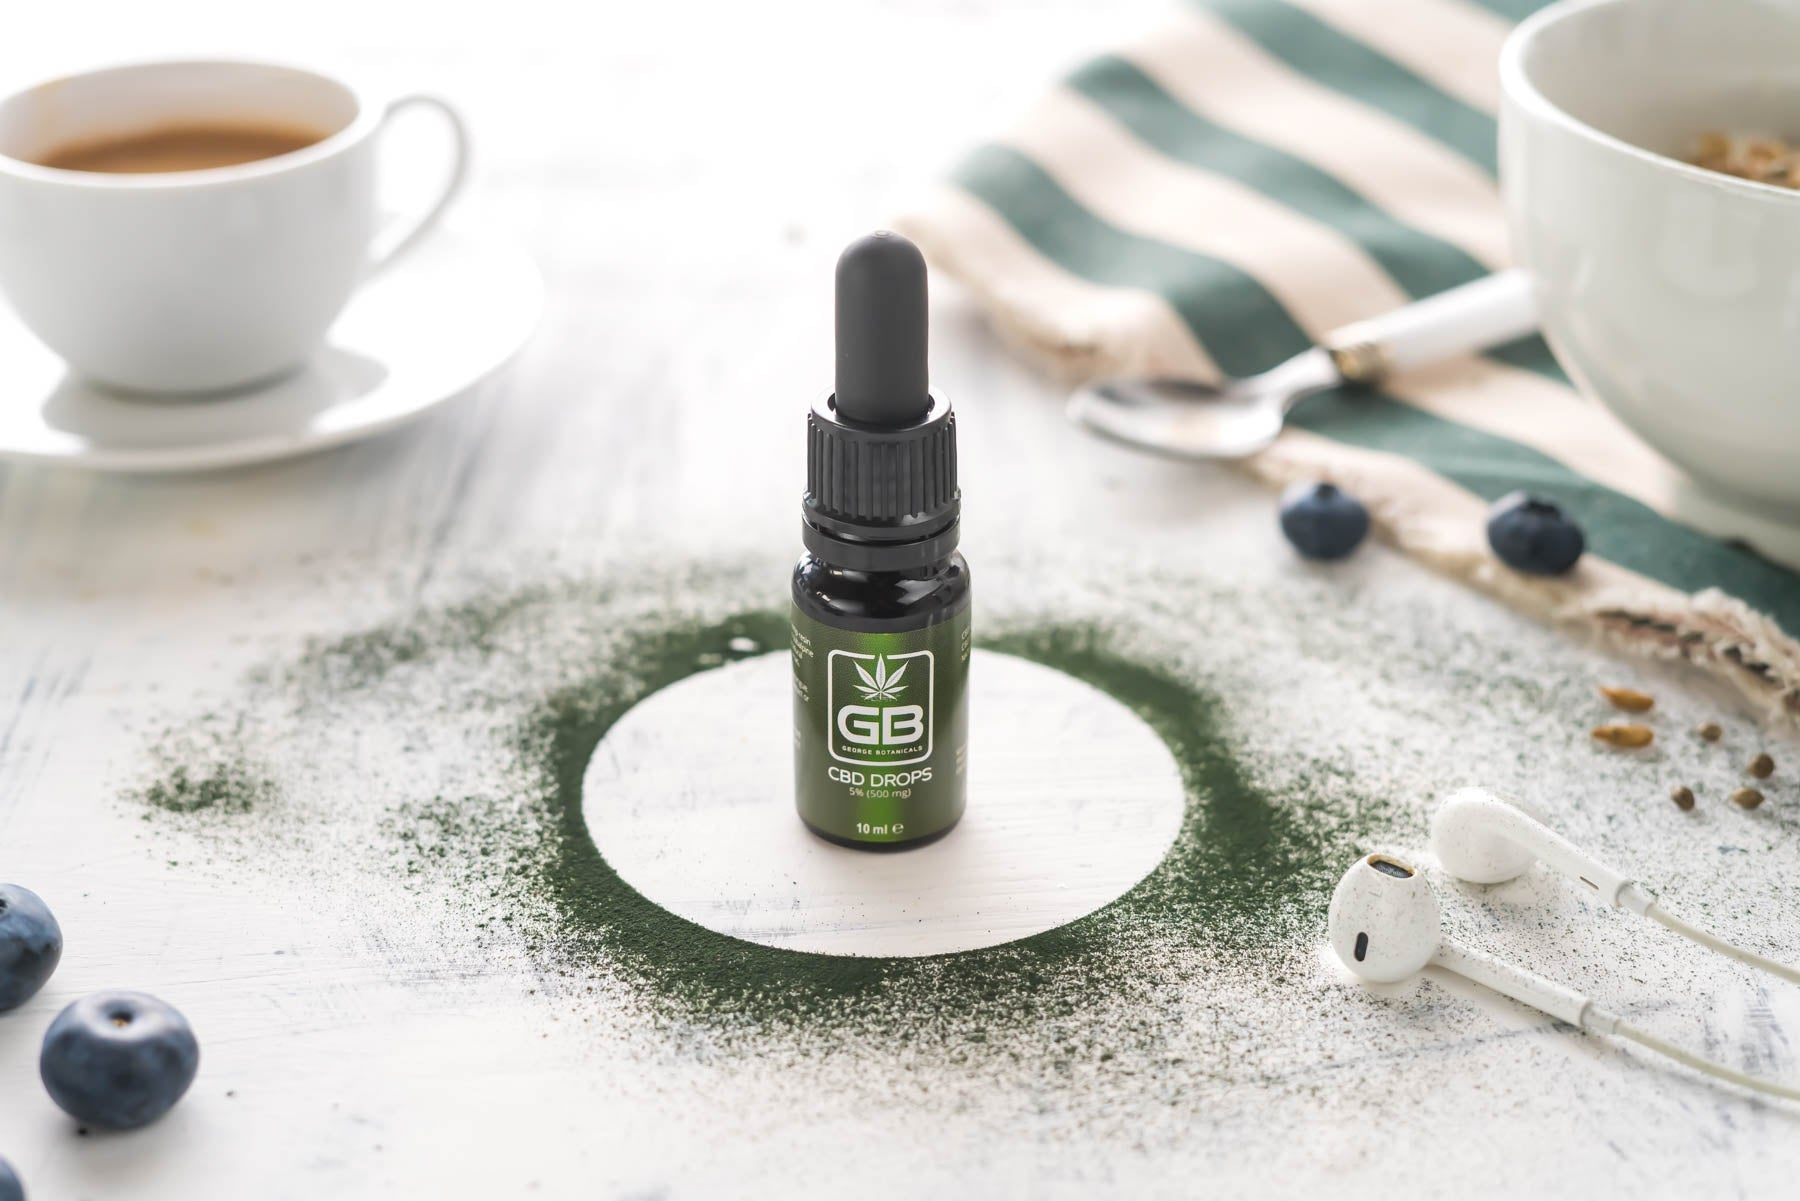 What times of the day are best to take CBD?